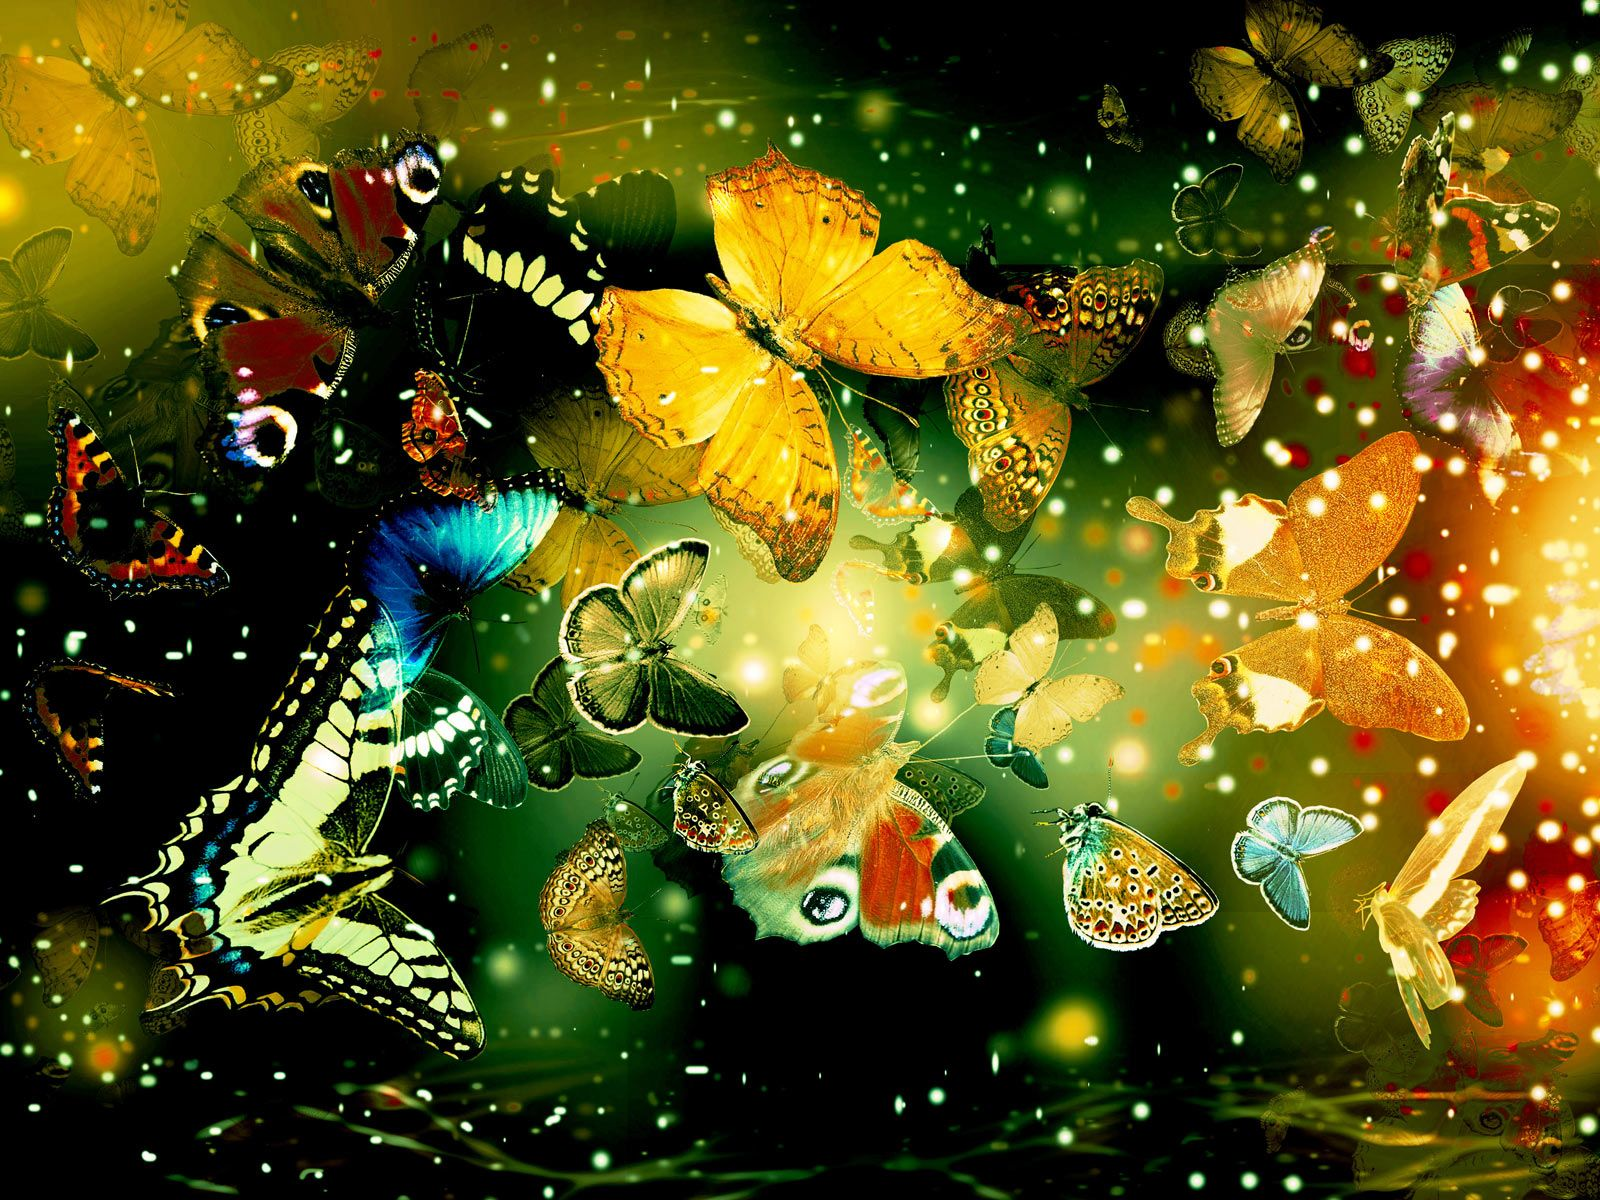 Backgrounds Everyone Can Like This Is The Most Viewed - Butterfly wallpaper for computer desktop